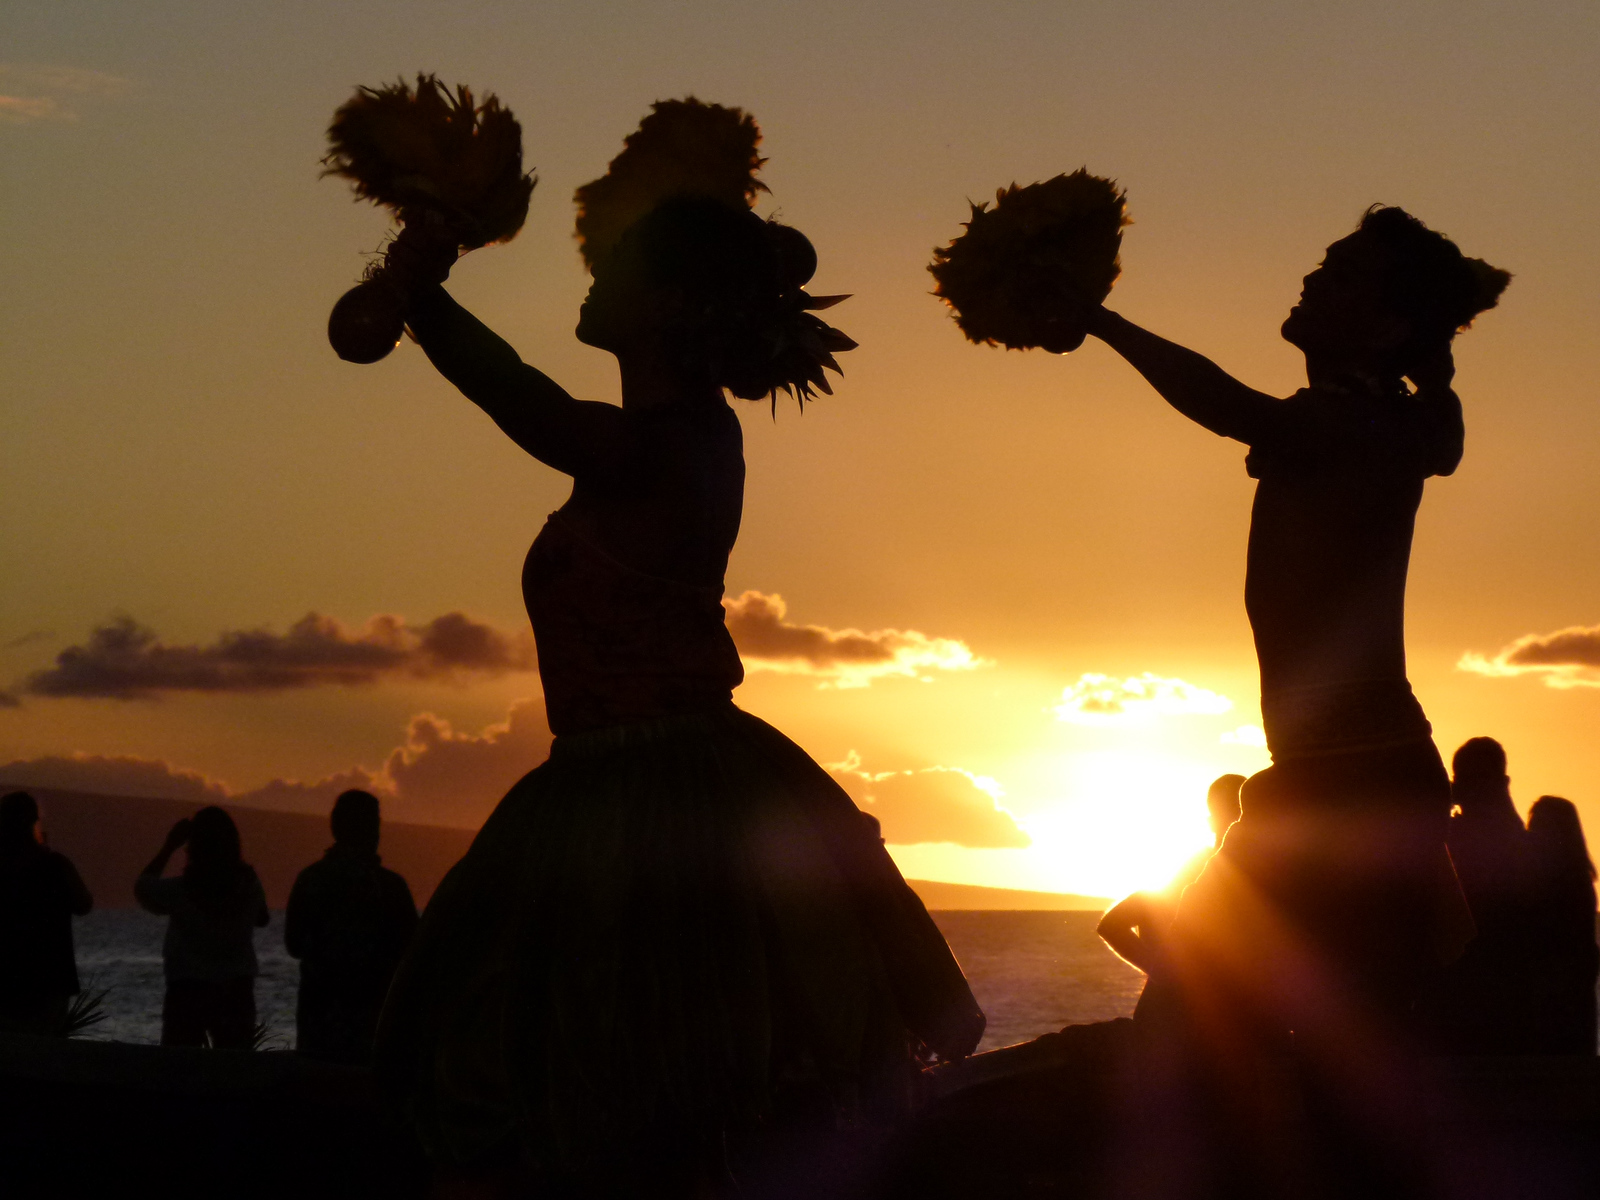 Silhouettes of two hula dancers on Maui as the sun sets.